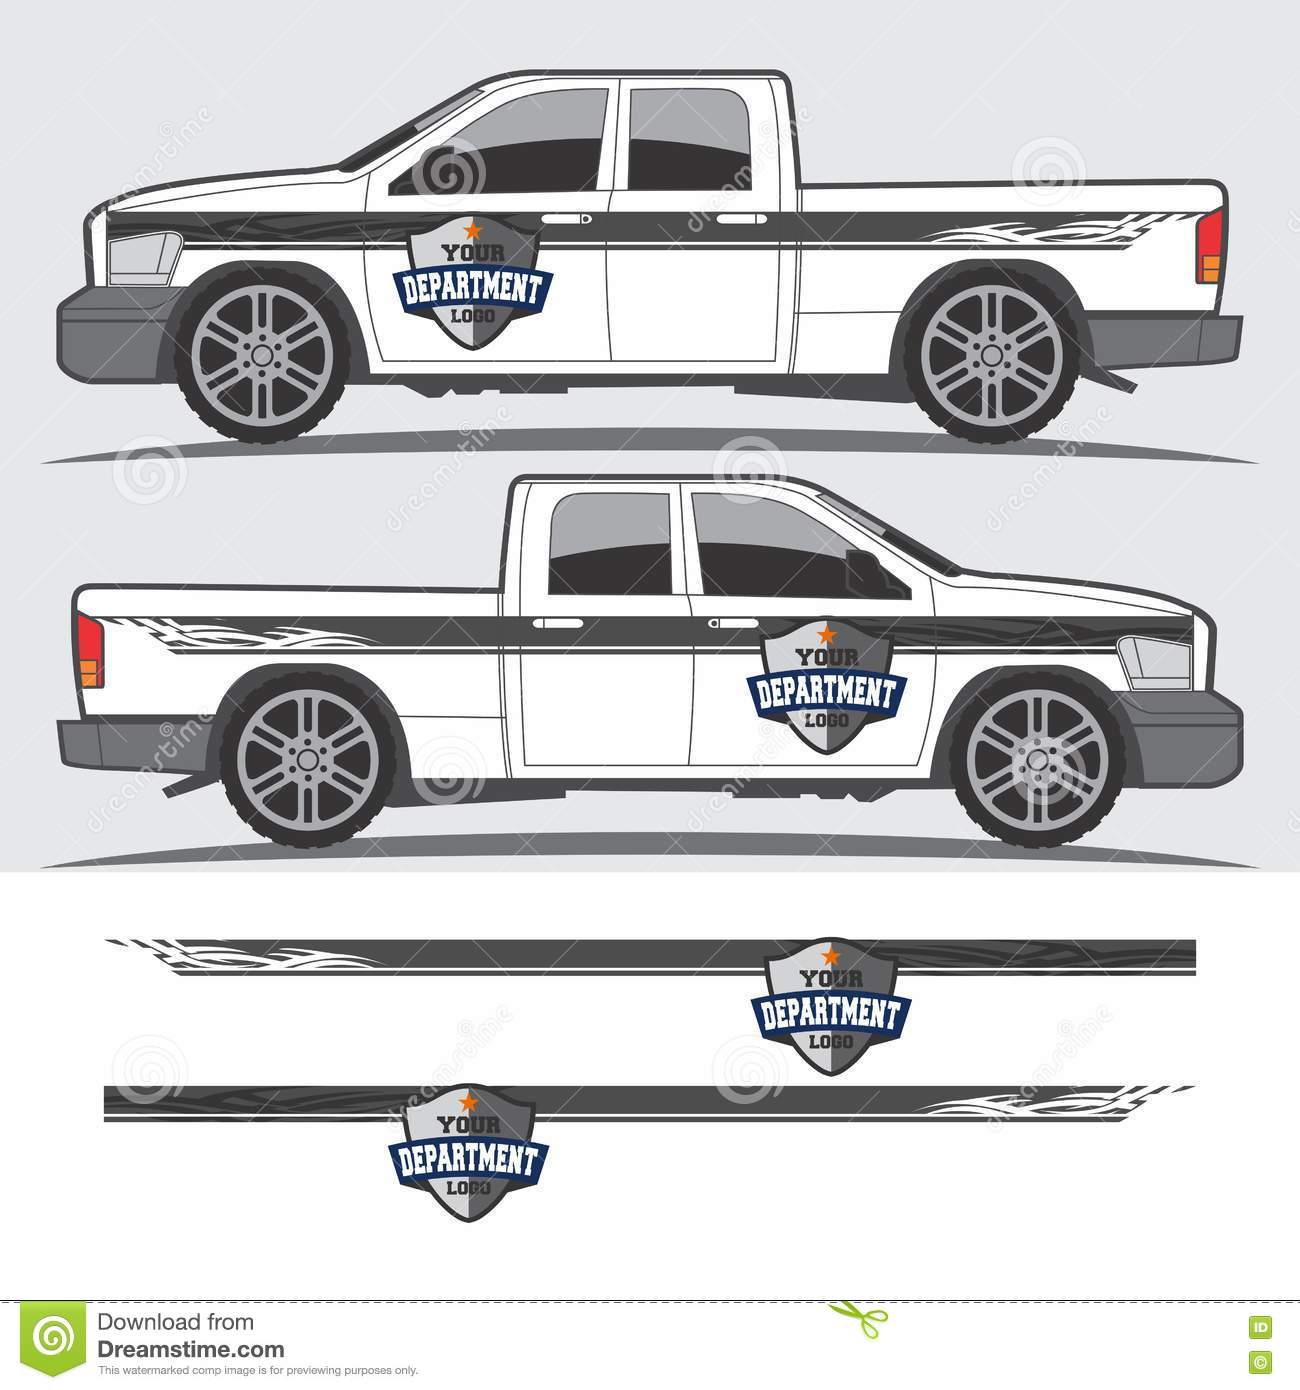 Car decals and graphics design - Truck And Vehicle Decal Graphic Design